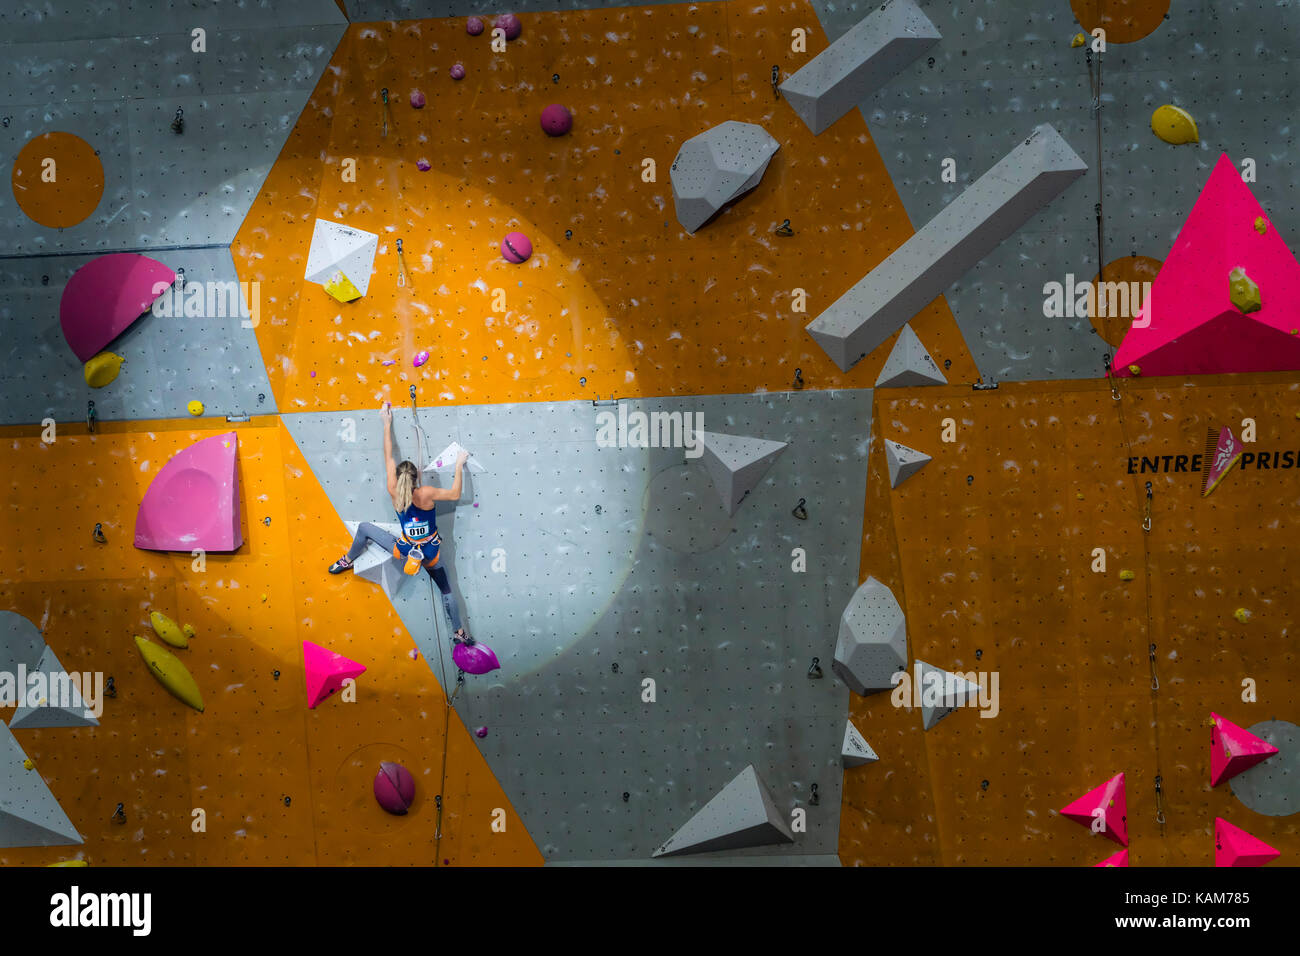 Julia Chanourdie of France in Women Lead event at  the International Federation of Sport Climbing (IFSC) World Cup - Stock Image